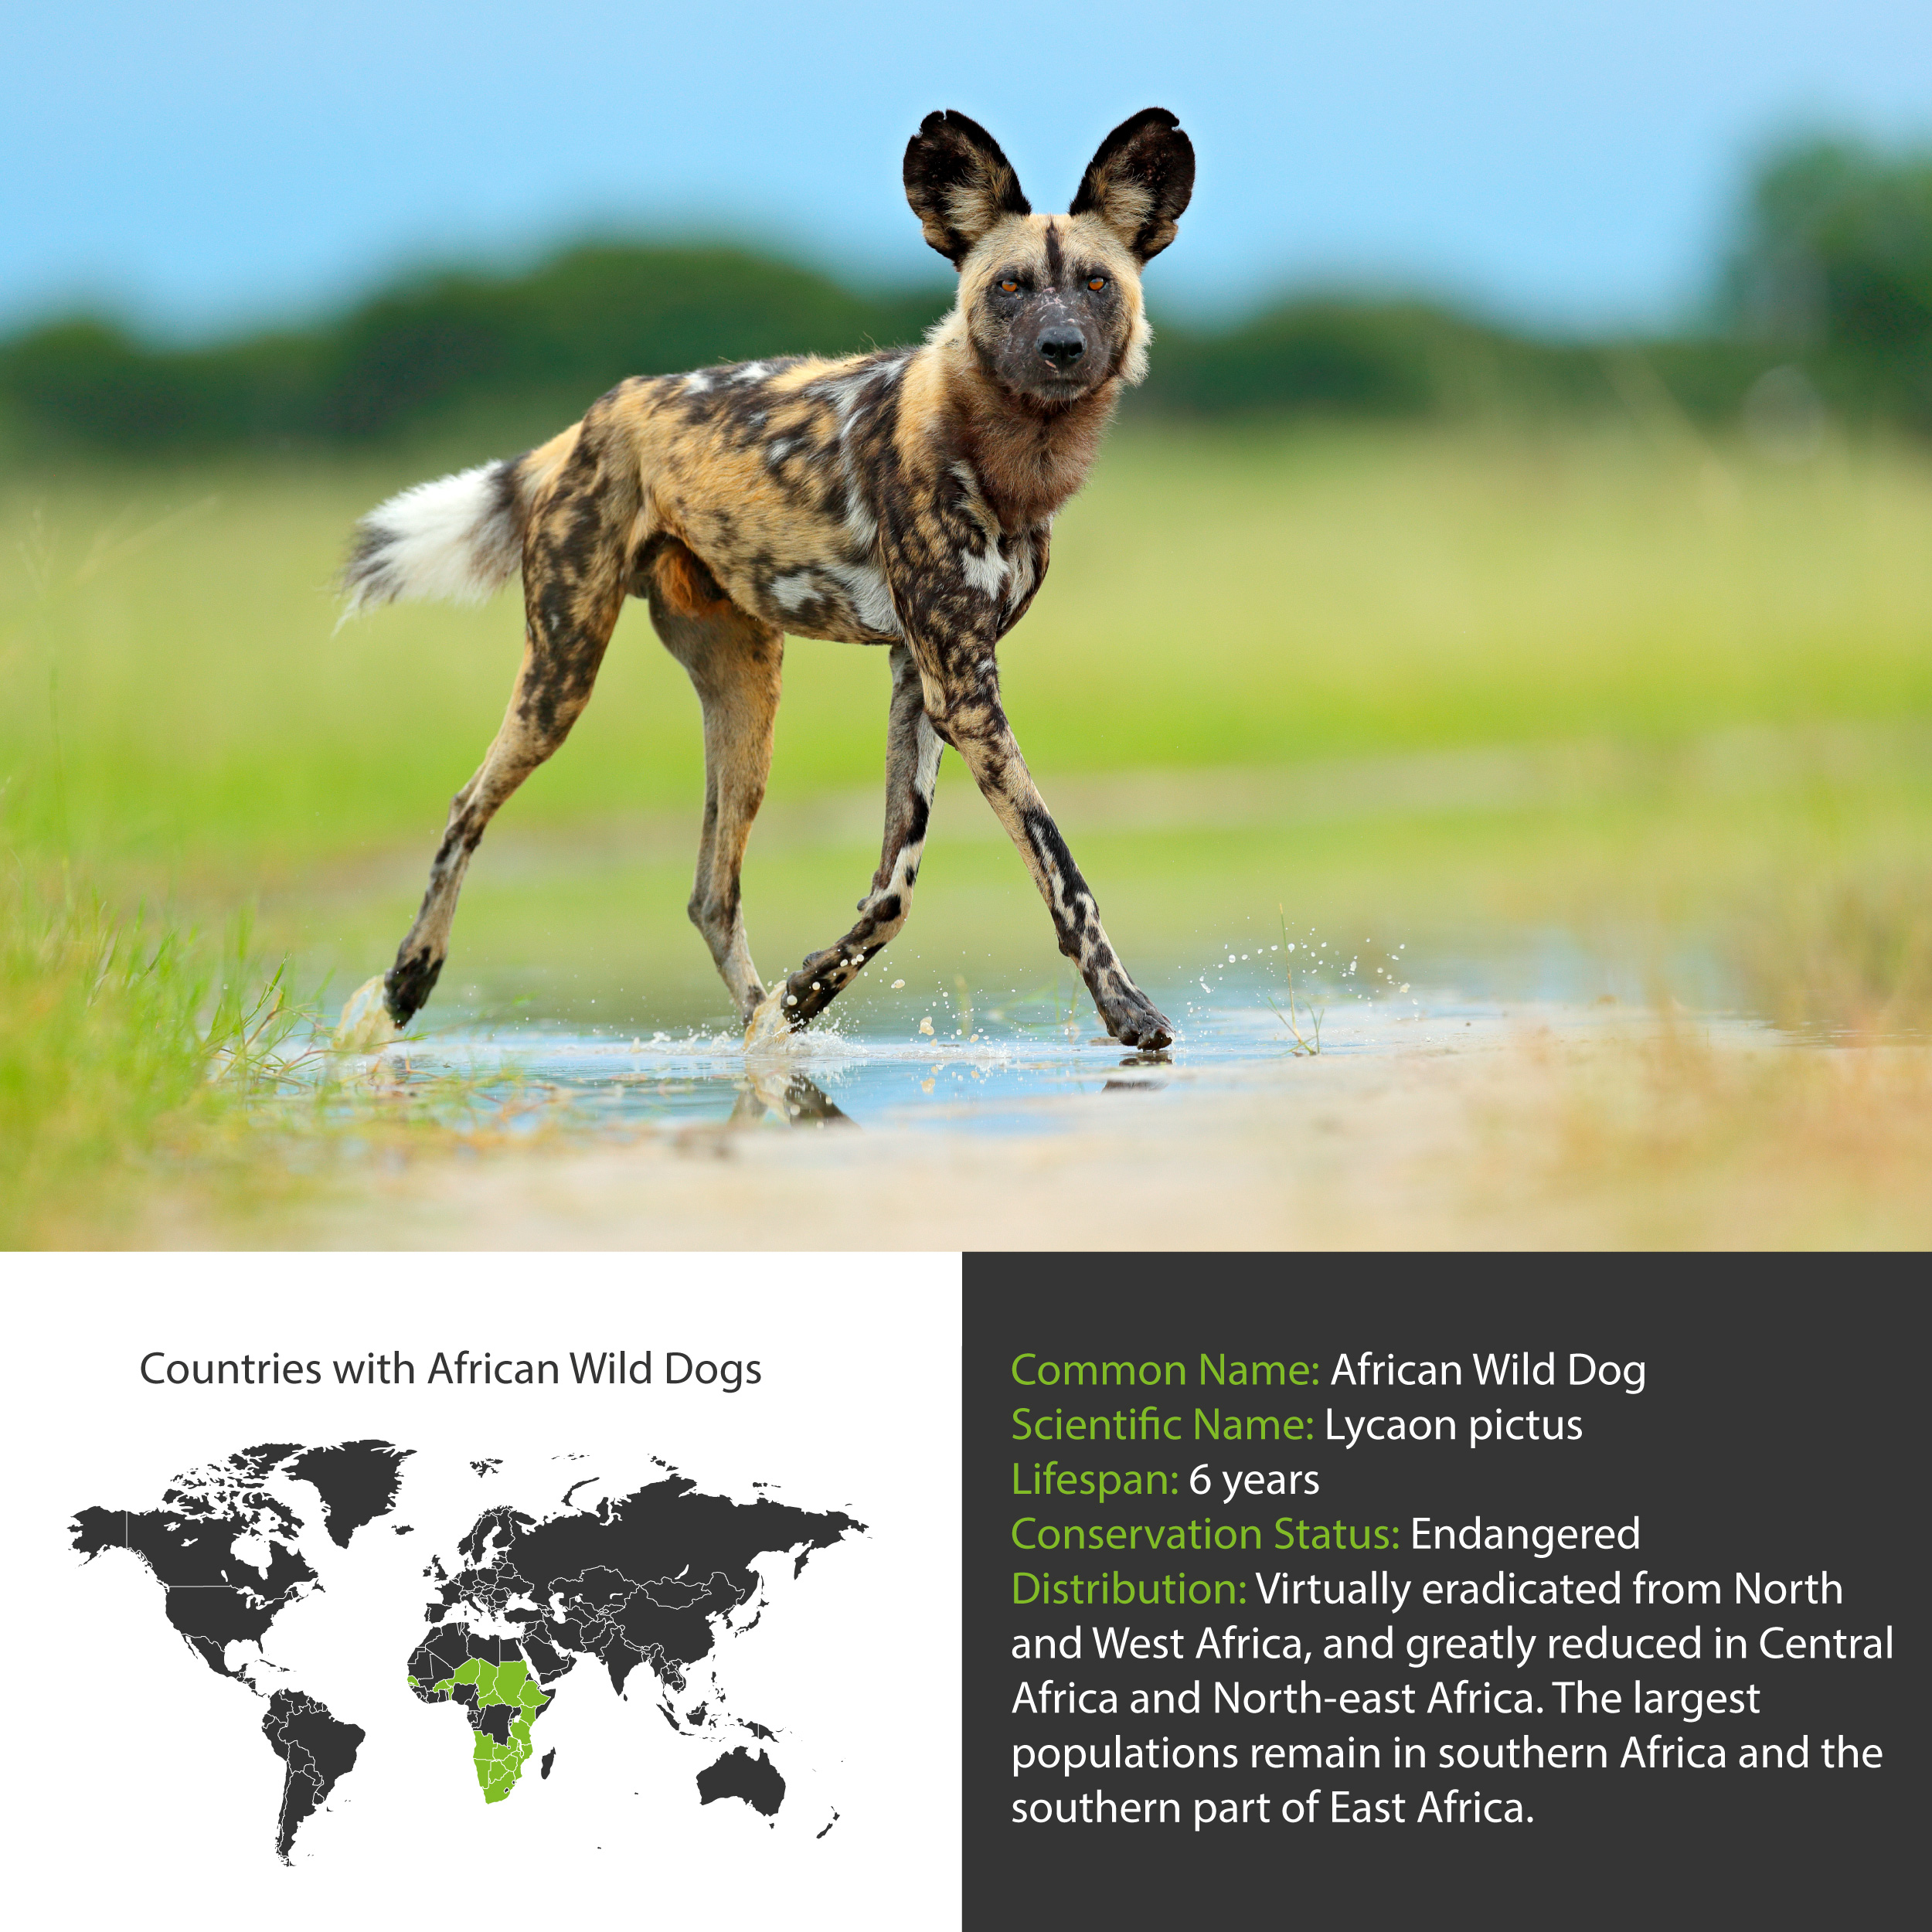 African Wild Dog Distribution